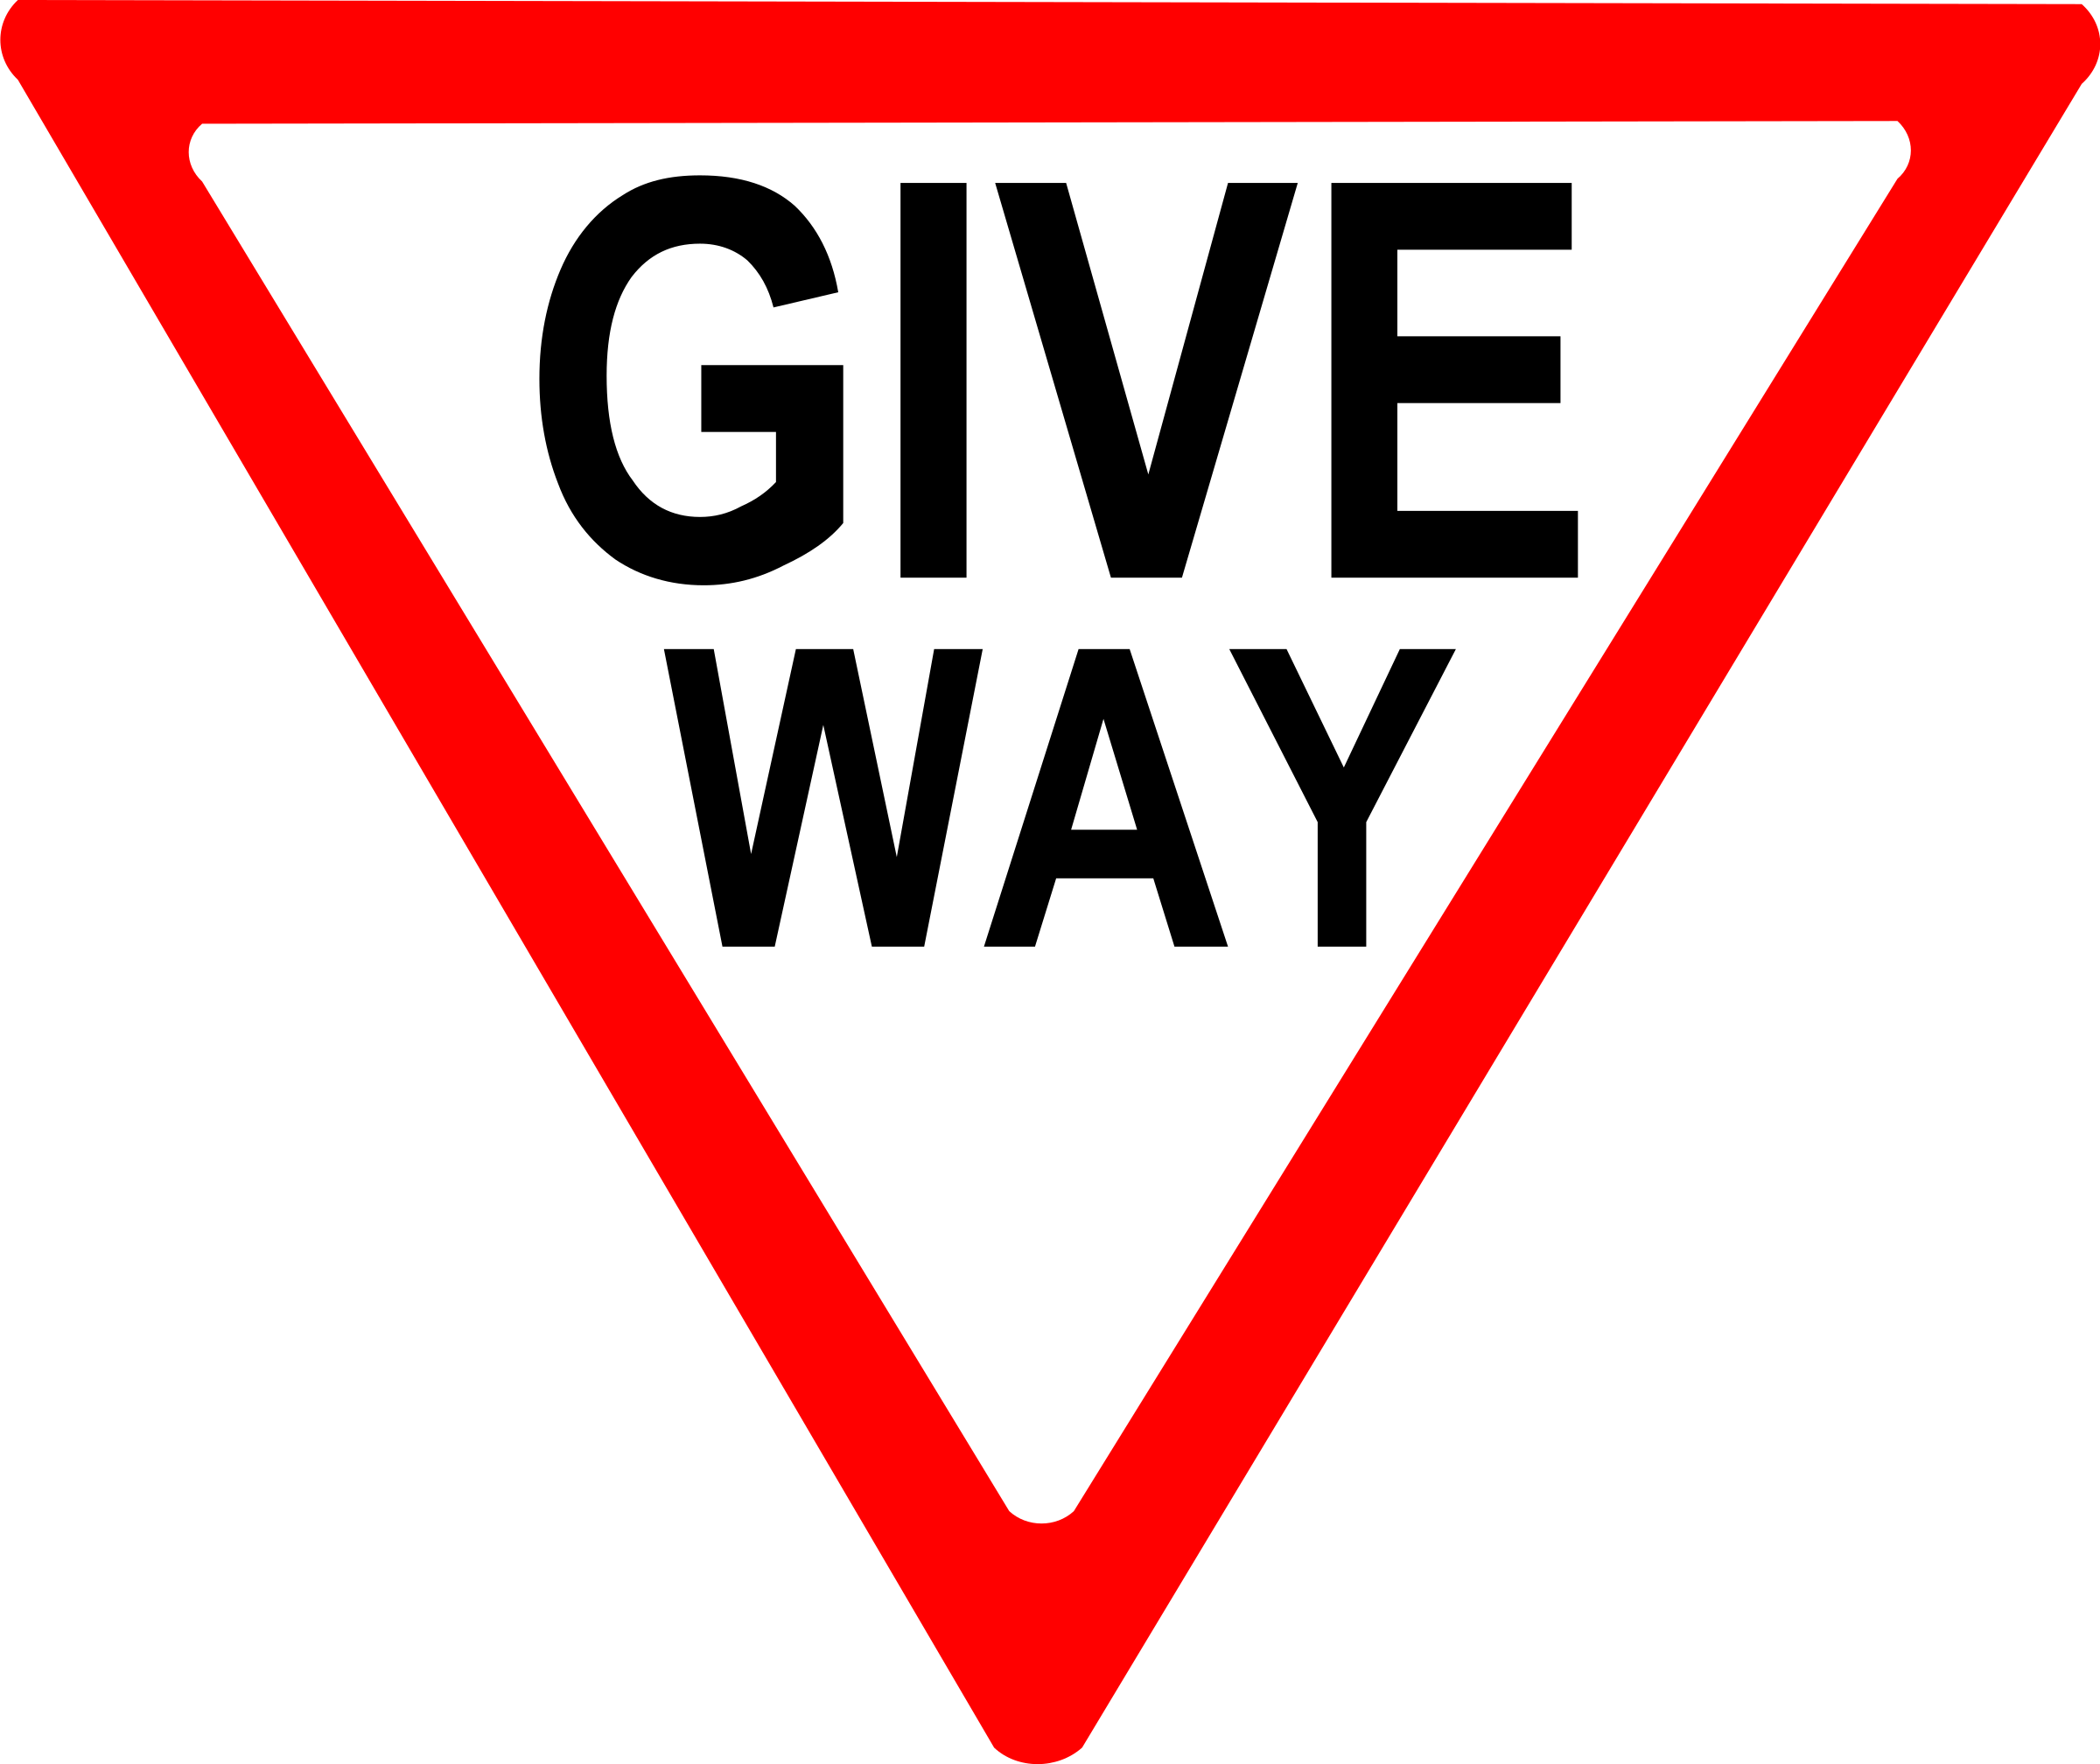 give way sign by Leomarc